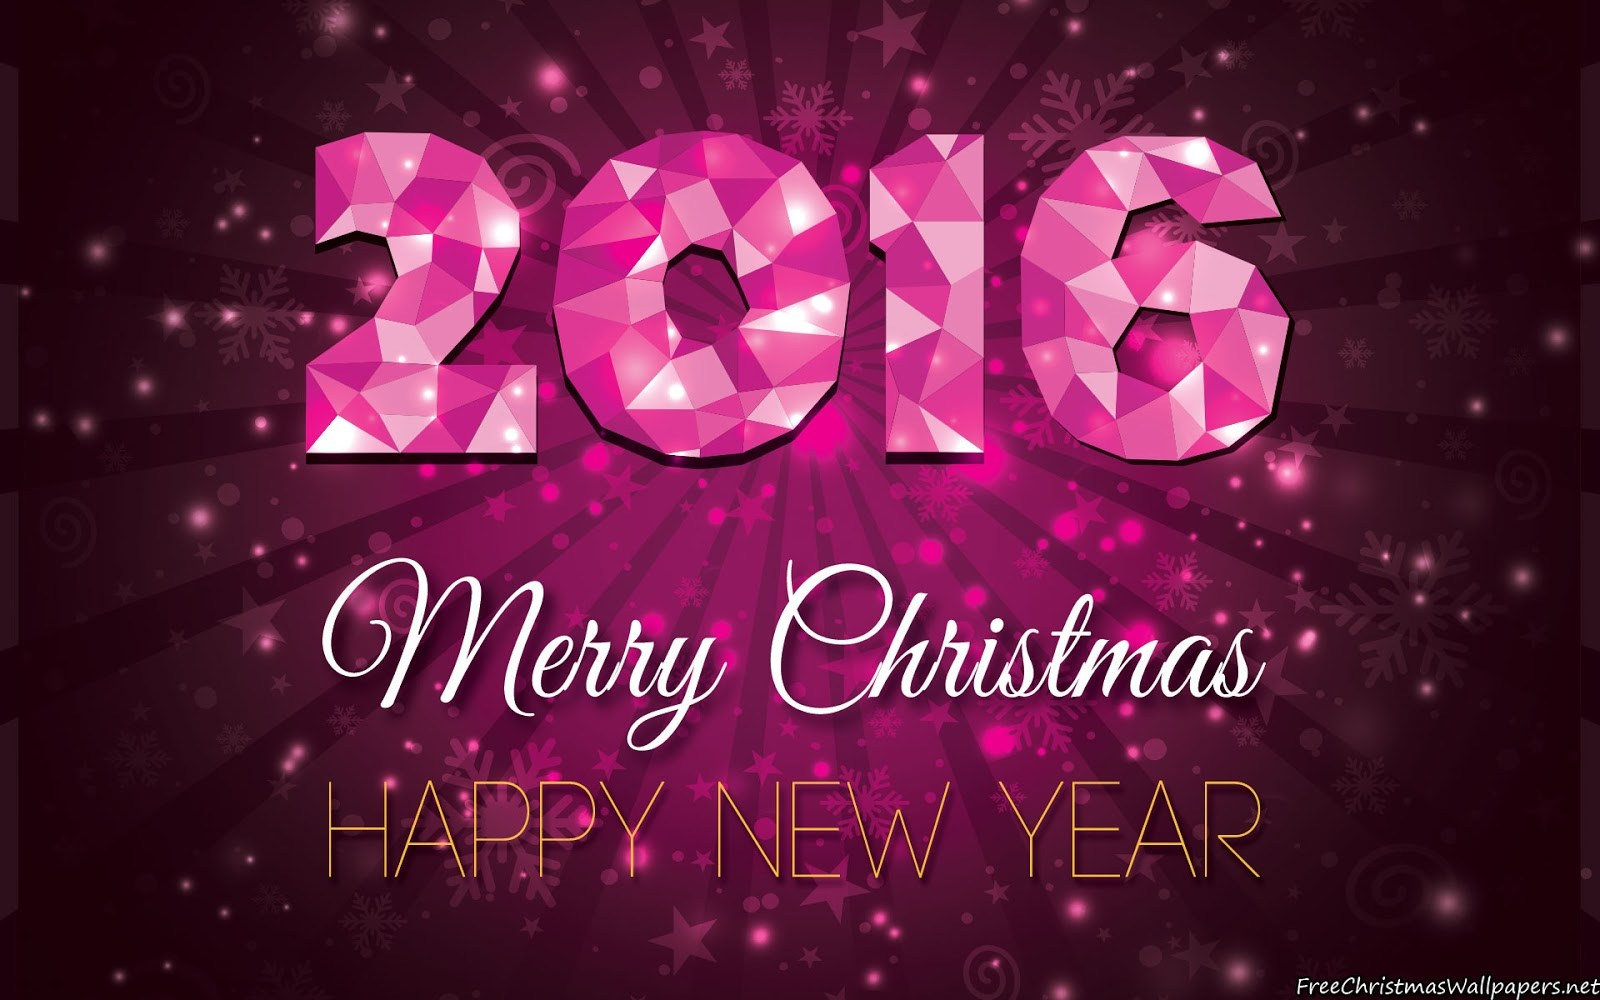 Happy New Year 2016 Spanish Latest HD Greetings | Photos | Wishes ...